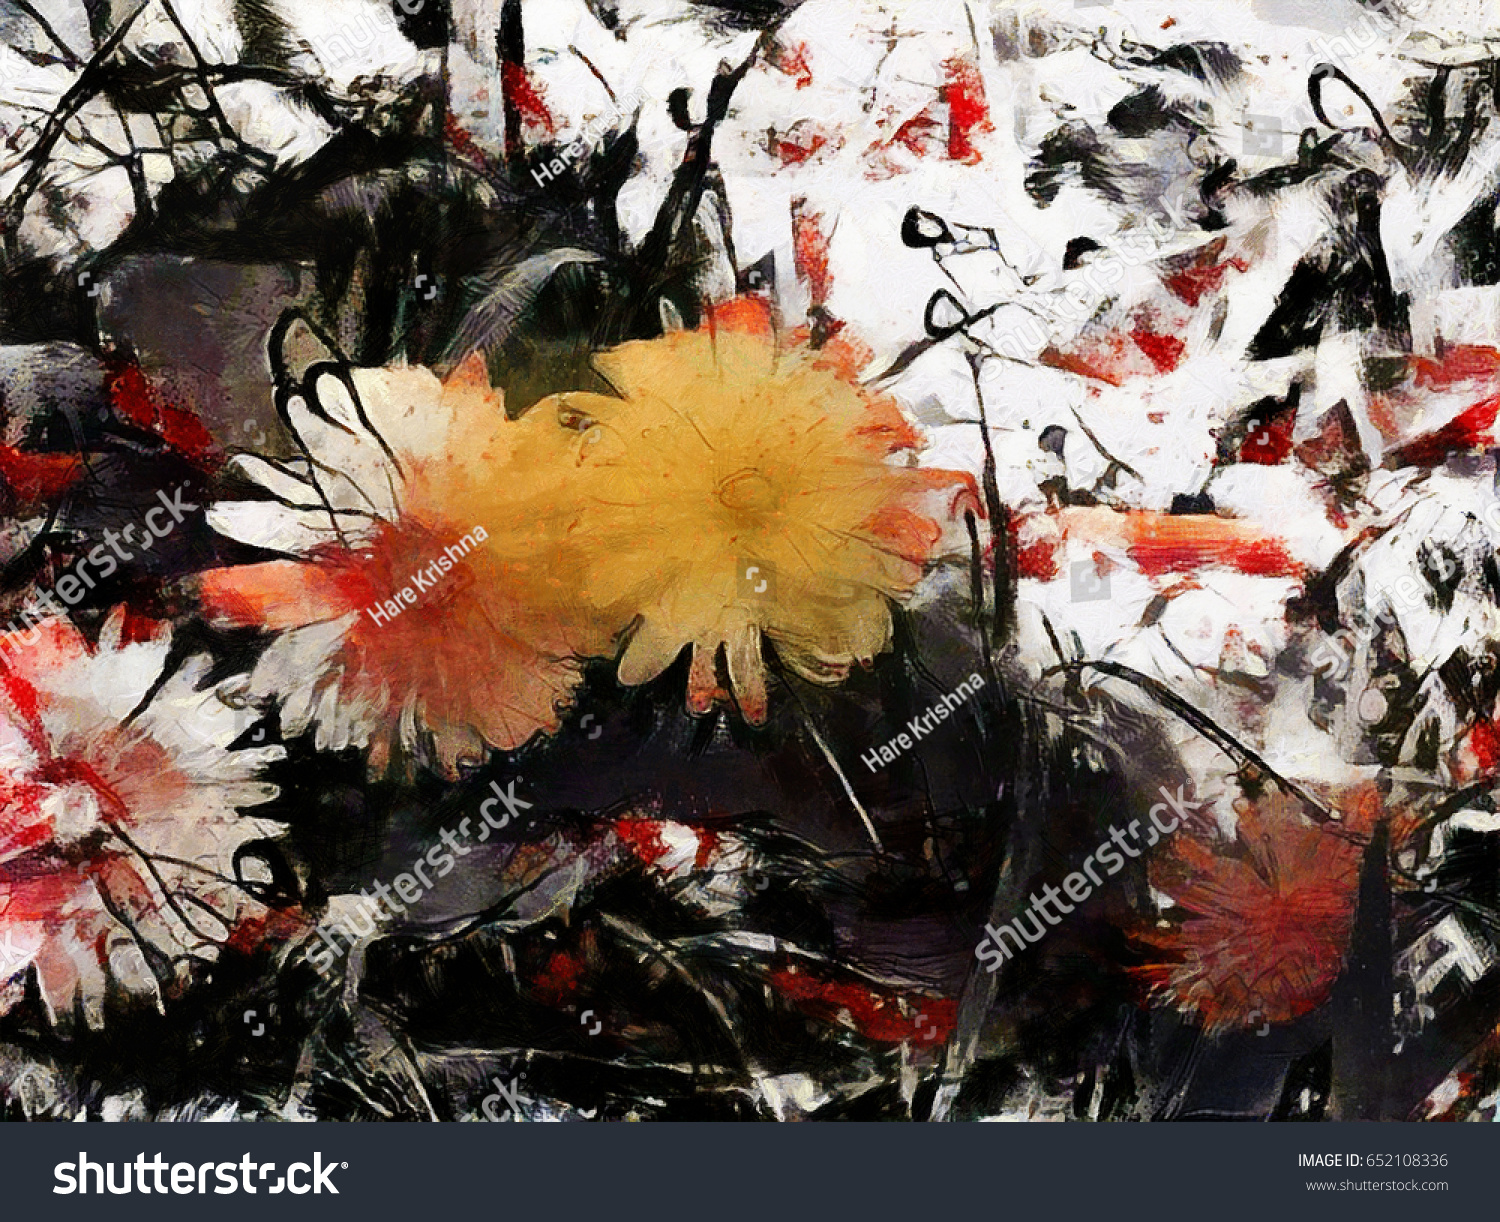 Red black abstract flowers bouquets style stock illustration red and black abstract flowers and bouquets in the style of jackson pollock grunge art izmirmasajfo